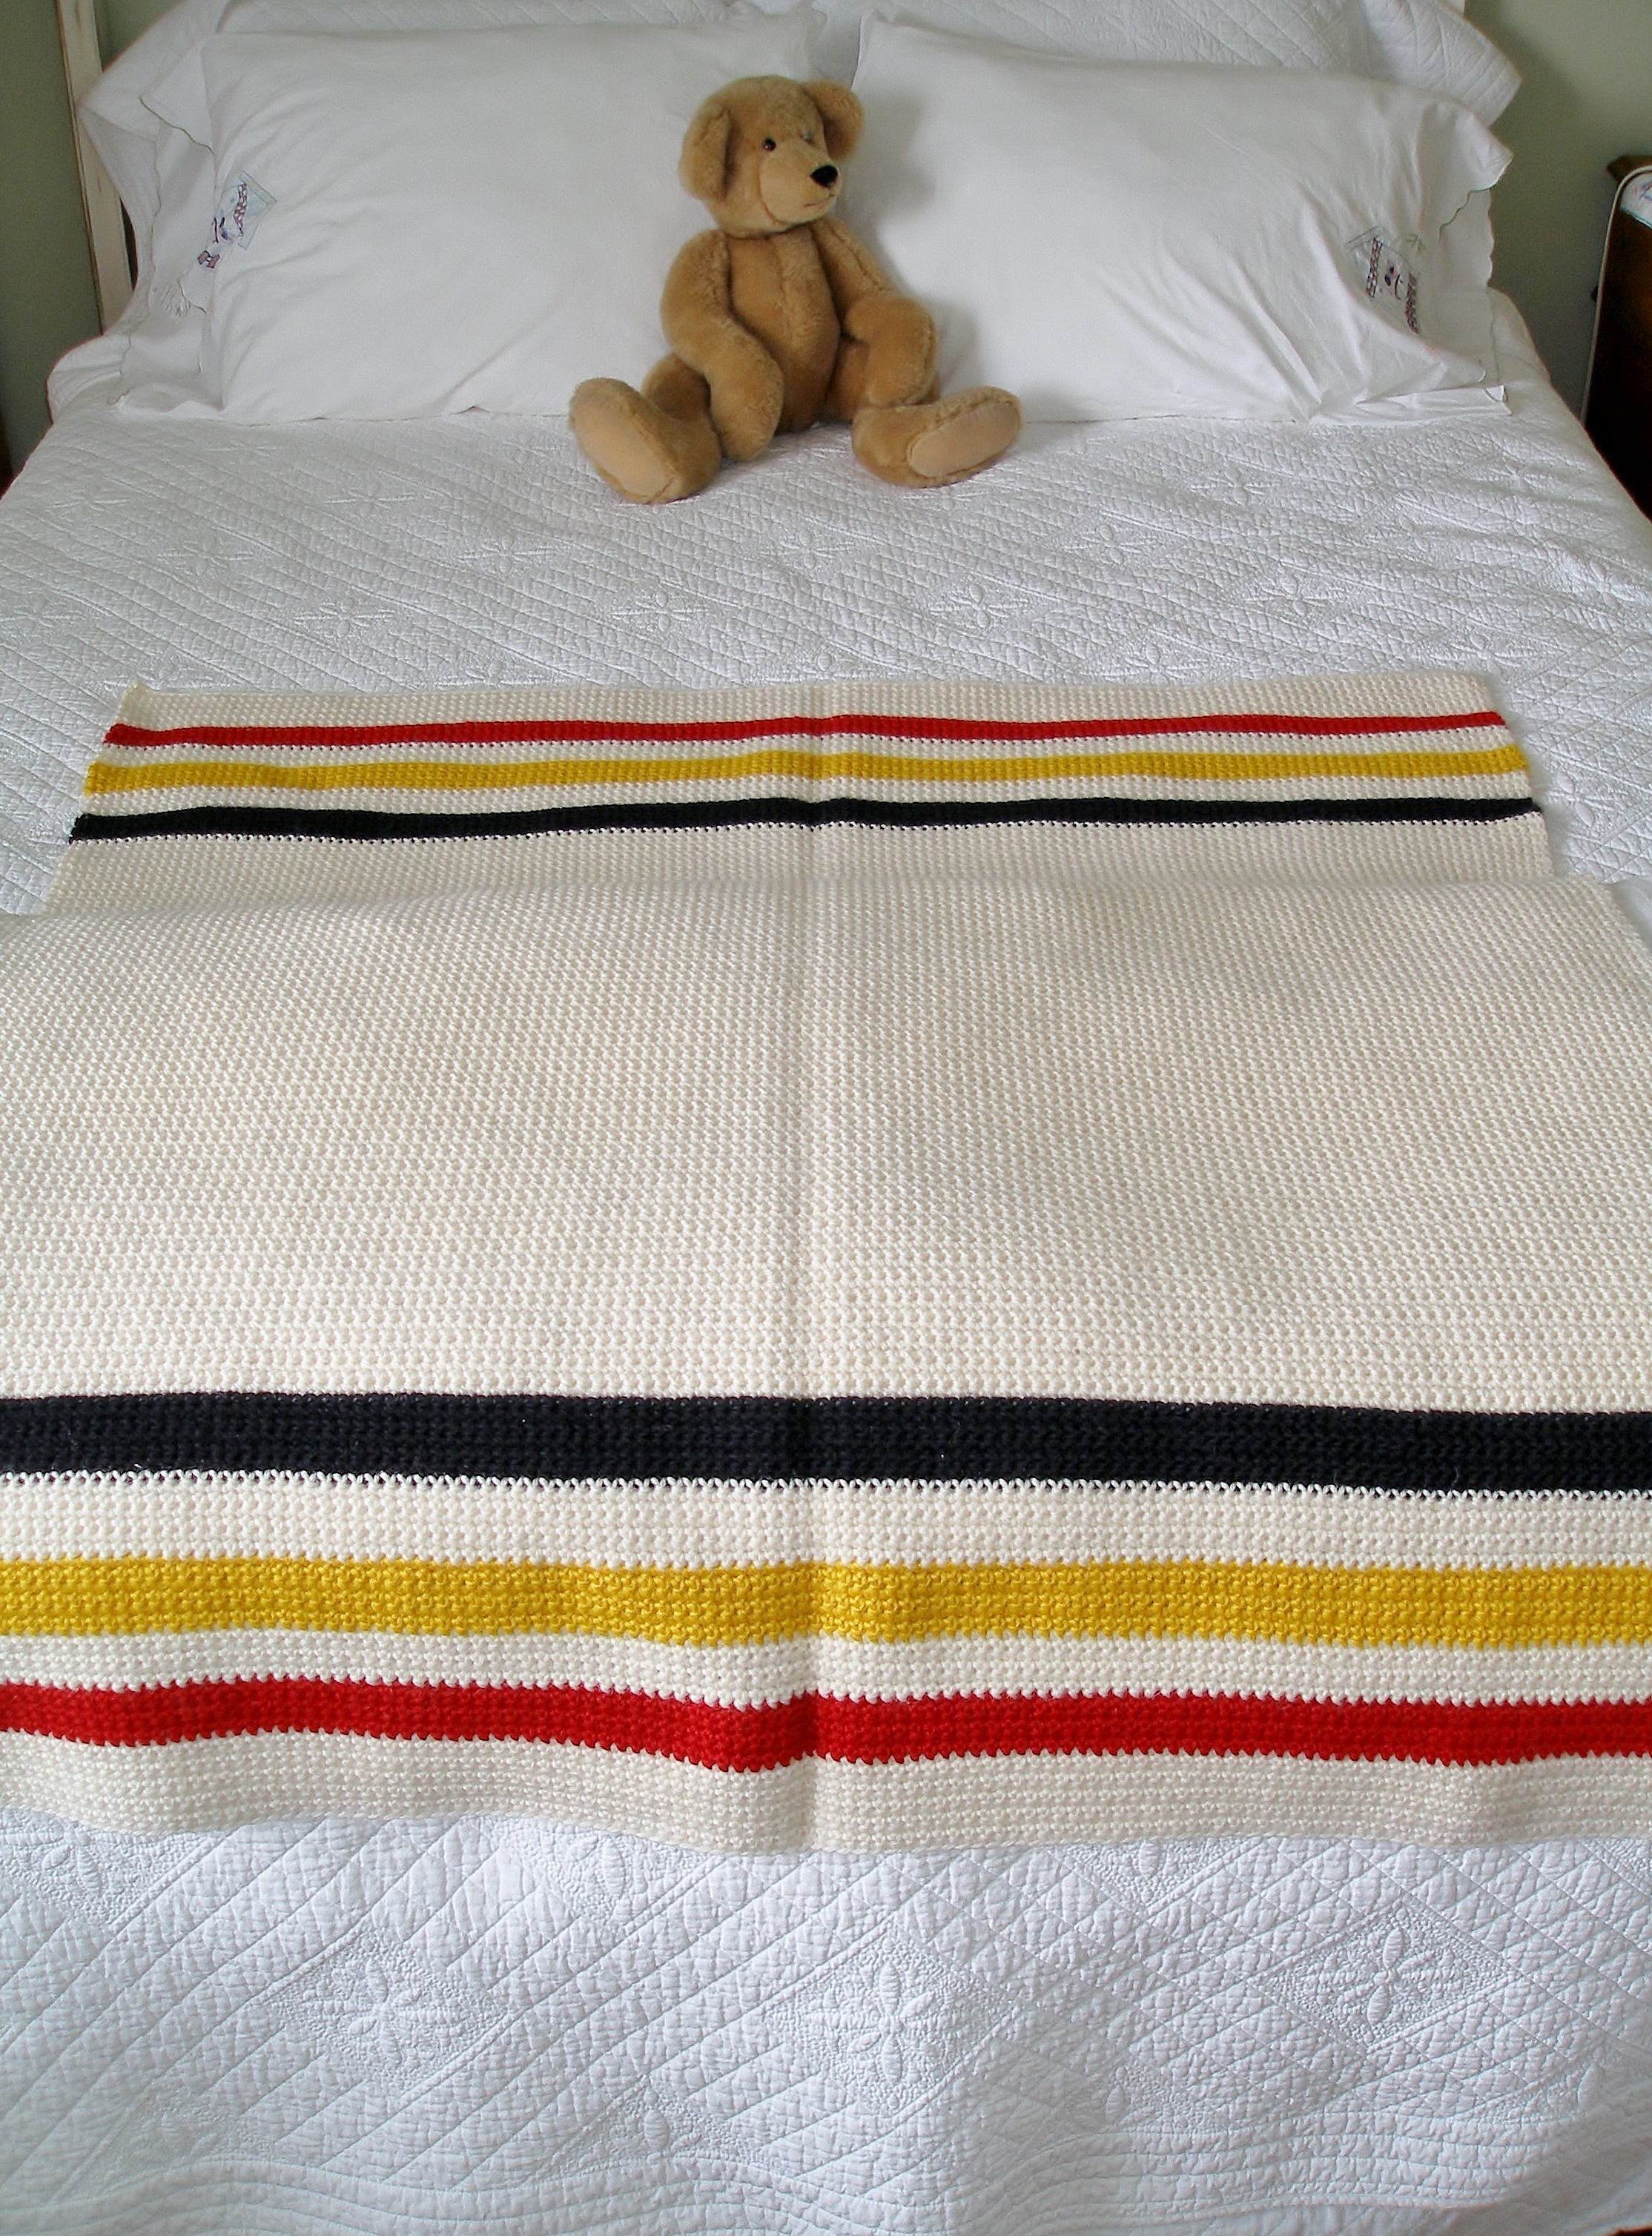 Knitting Pattern For Hudson Bay Blanket : Crochet Hudson Bay Blanket Knit and Crochet